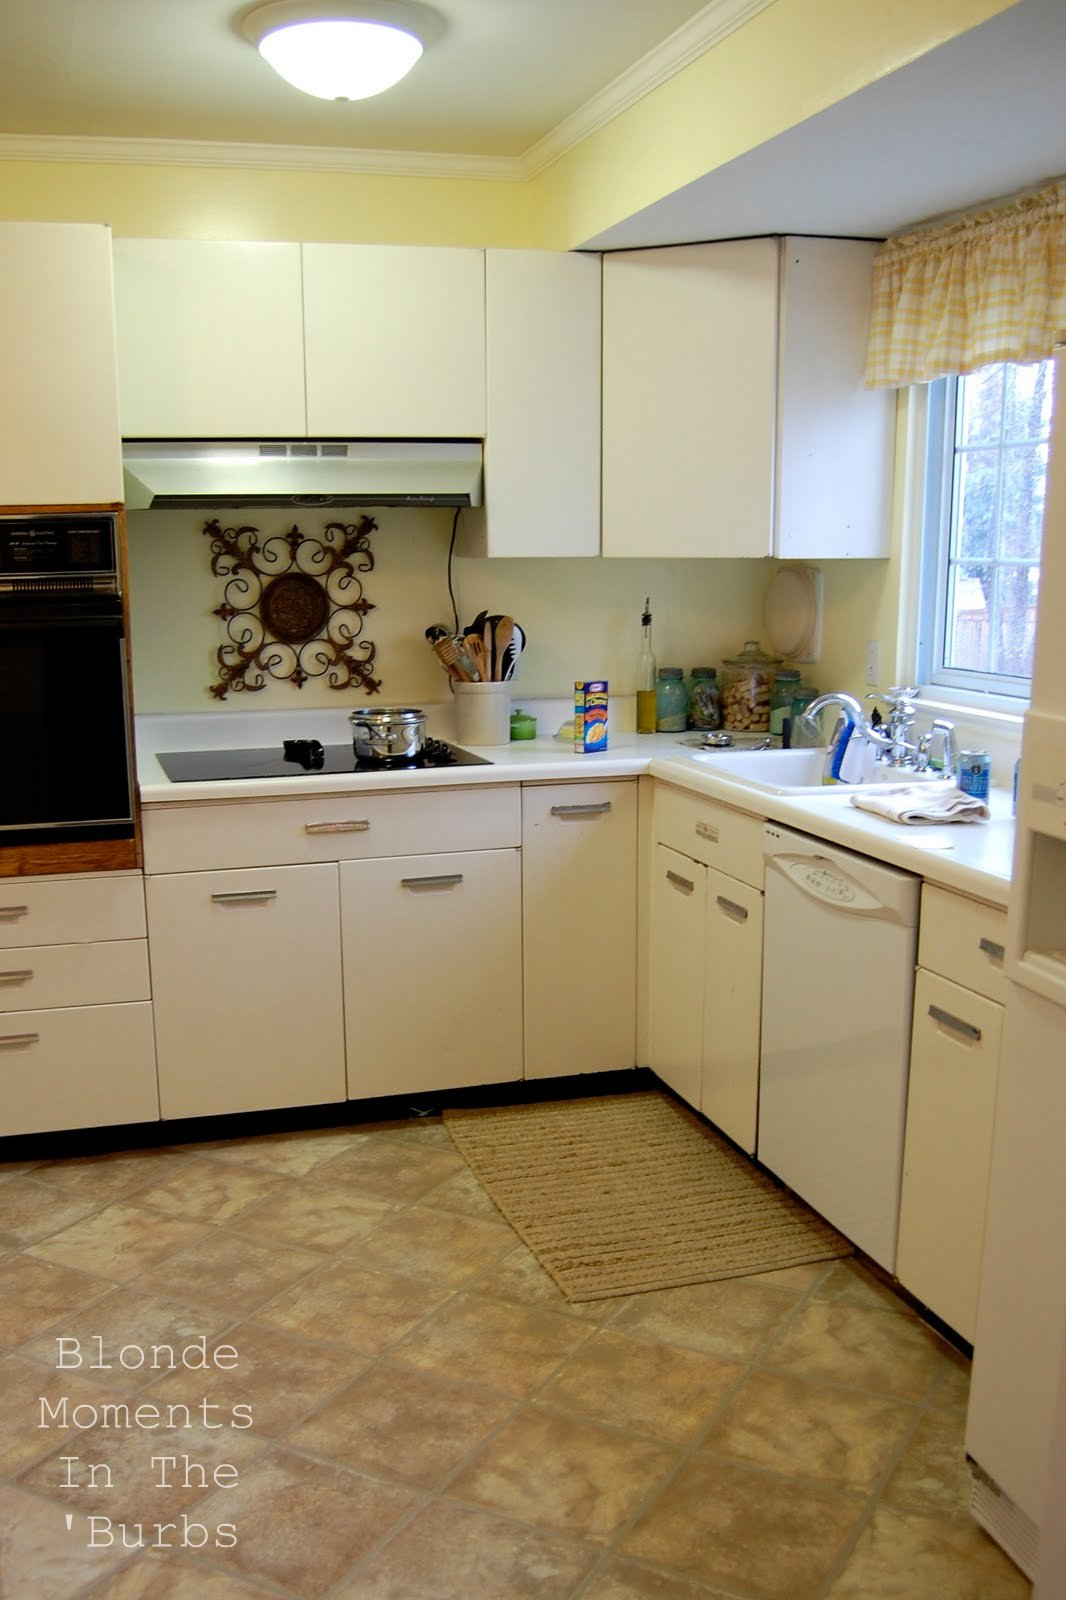 Blonde moments in the burbs kitchen mini makeover reveal - Kitchen wow mini makeovers ...